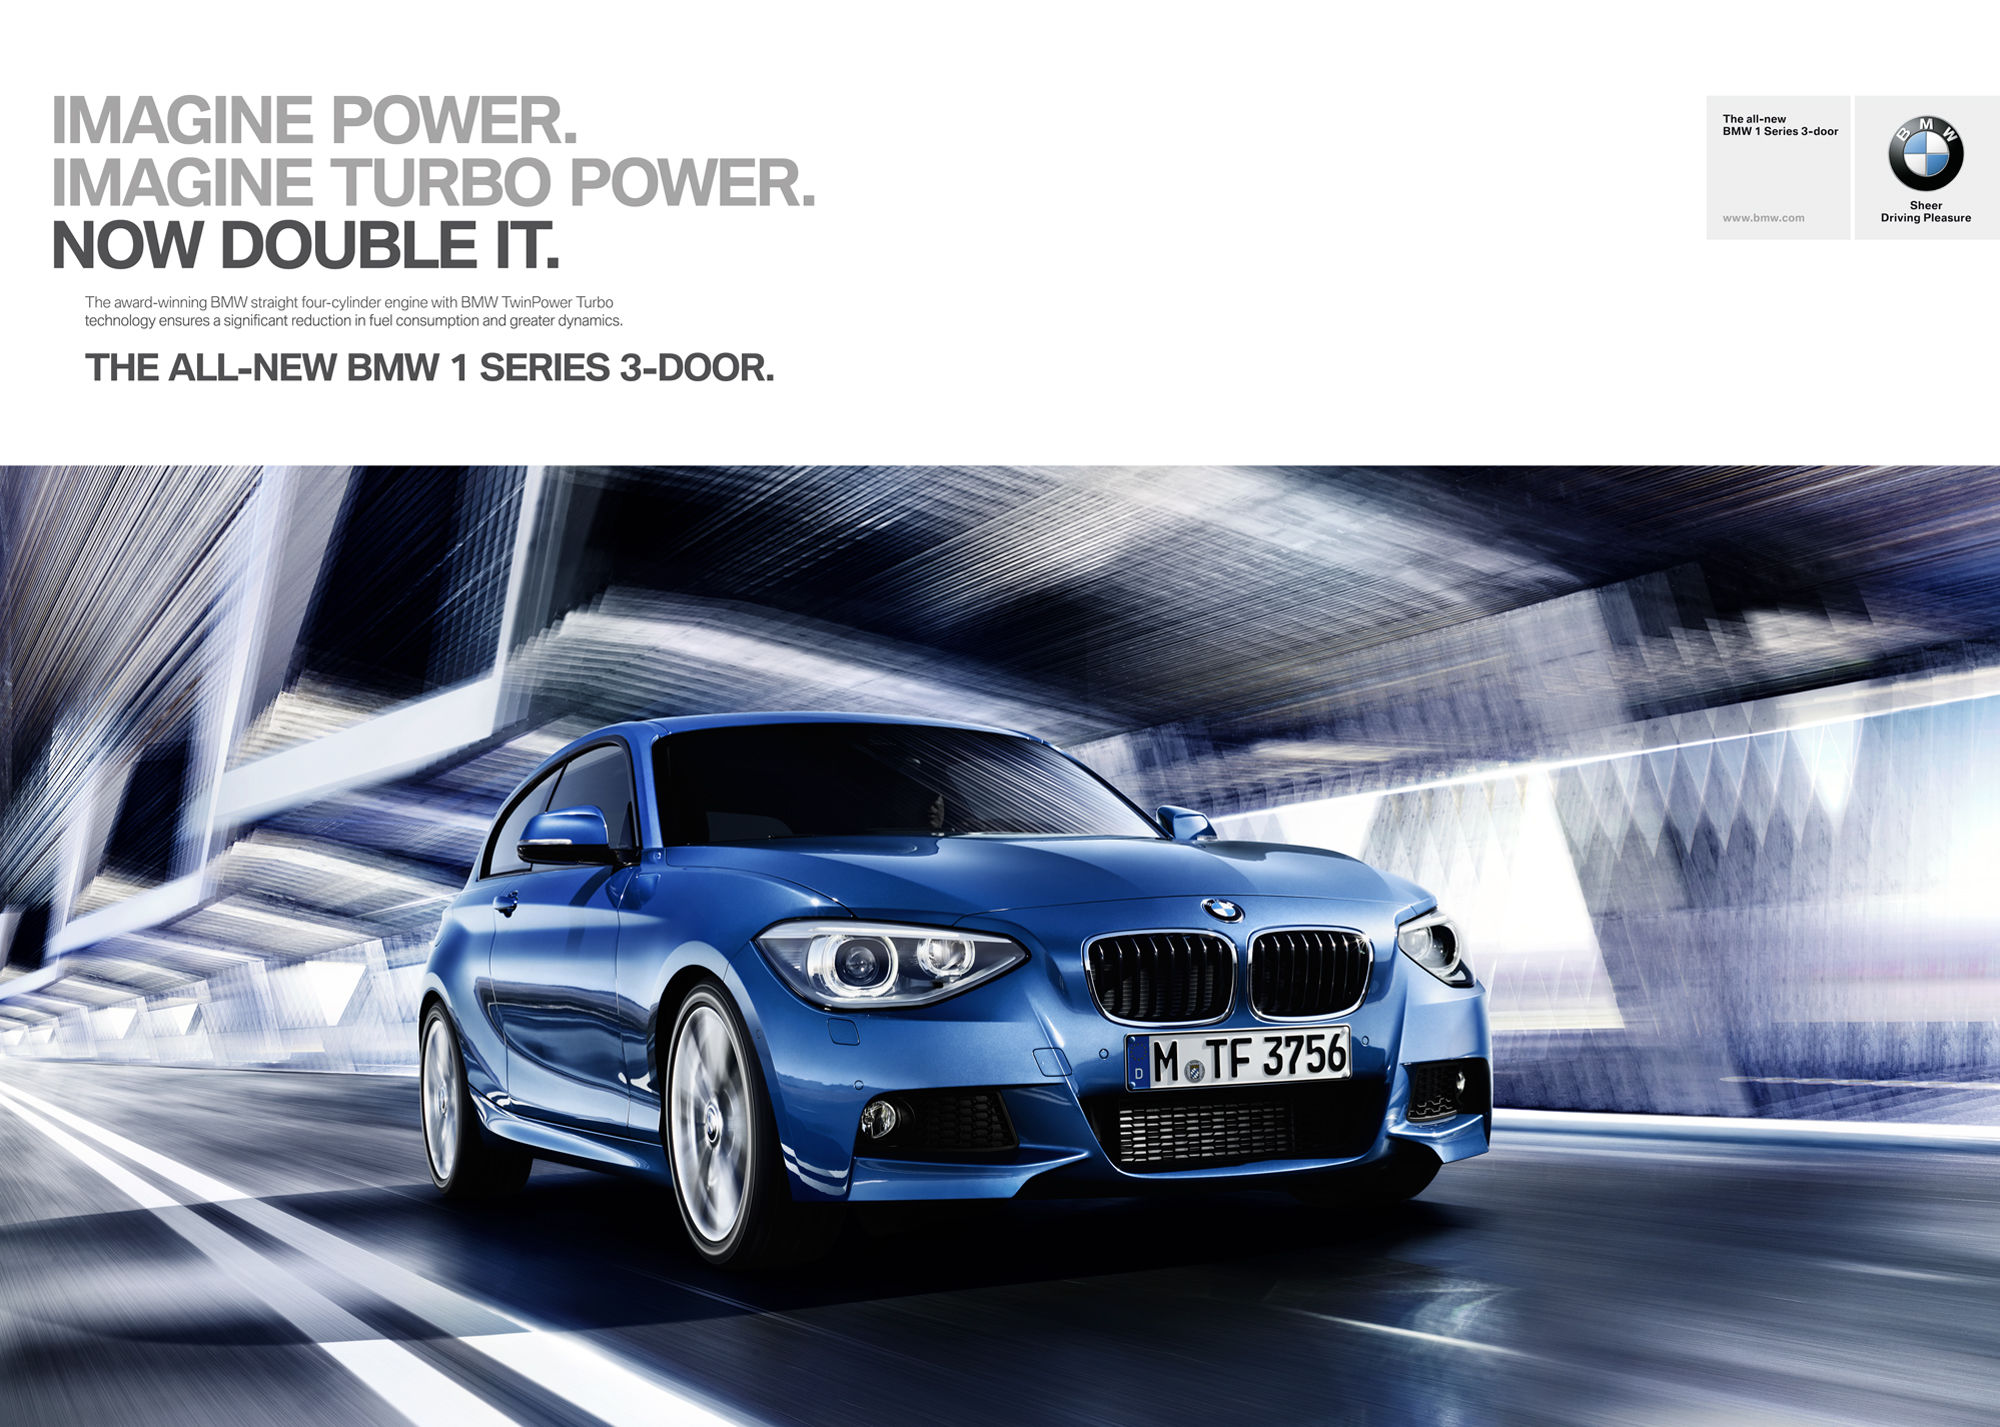 SONDA PRODUCTIONS for BMW